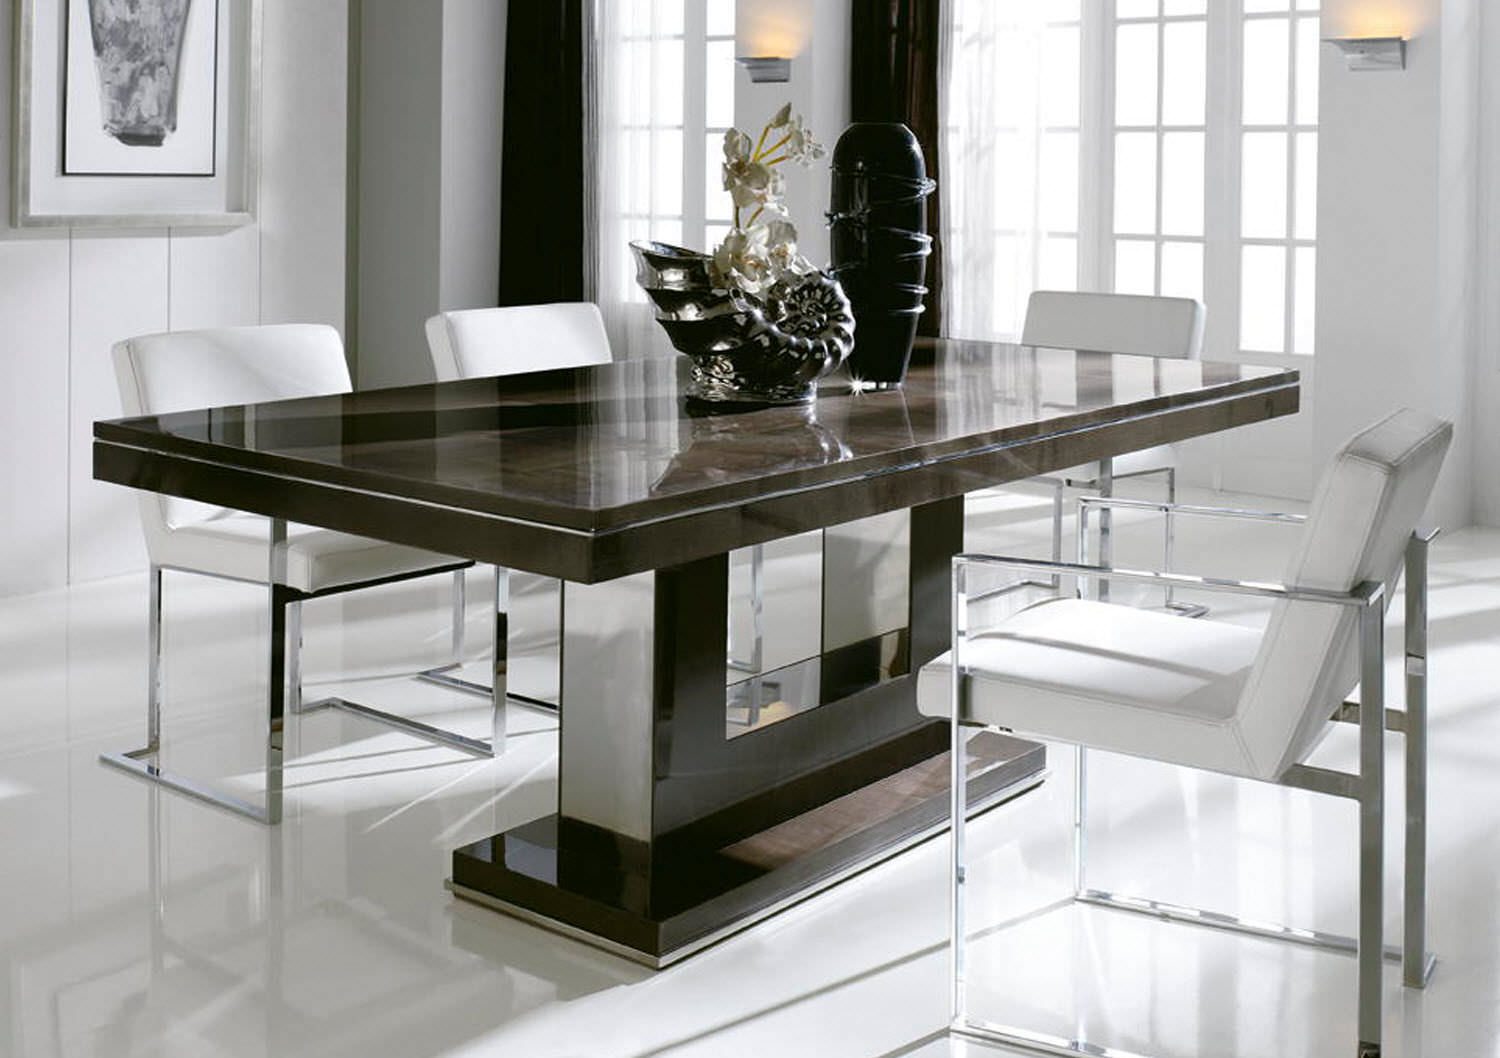 Contemporary Dining Room Tables And Chairs Endearing Mesa De Comedor Extensible Moderna Verona  Demarqueses  Столики 2018